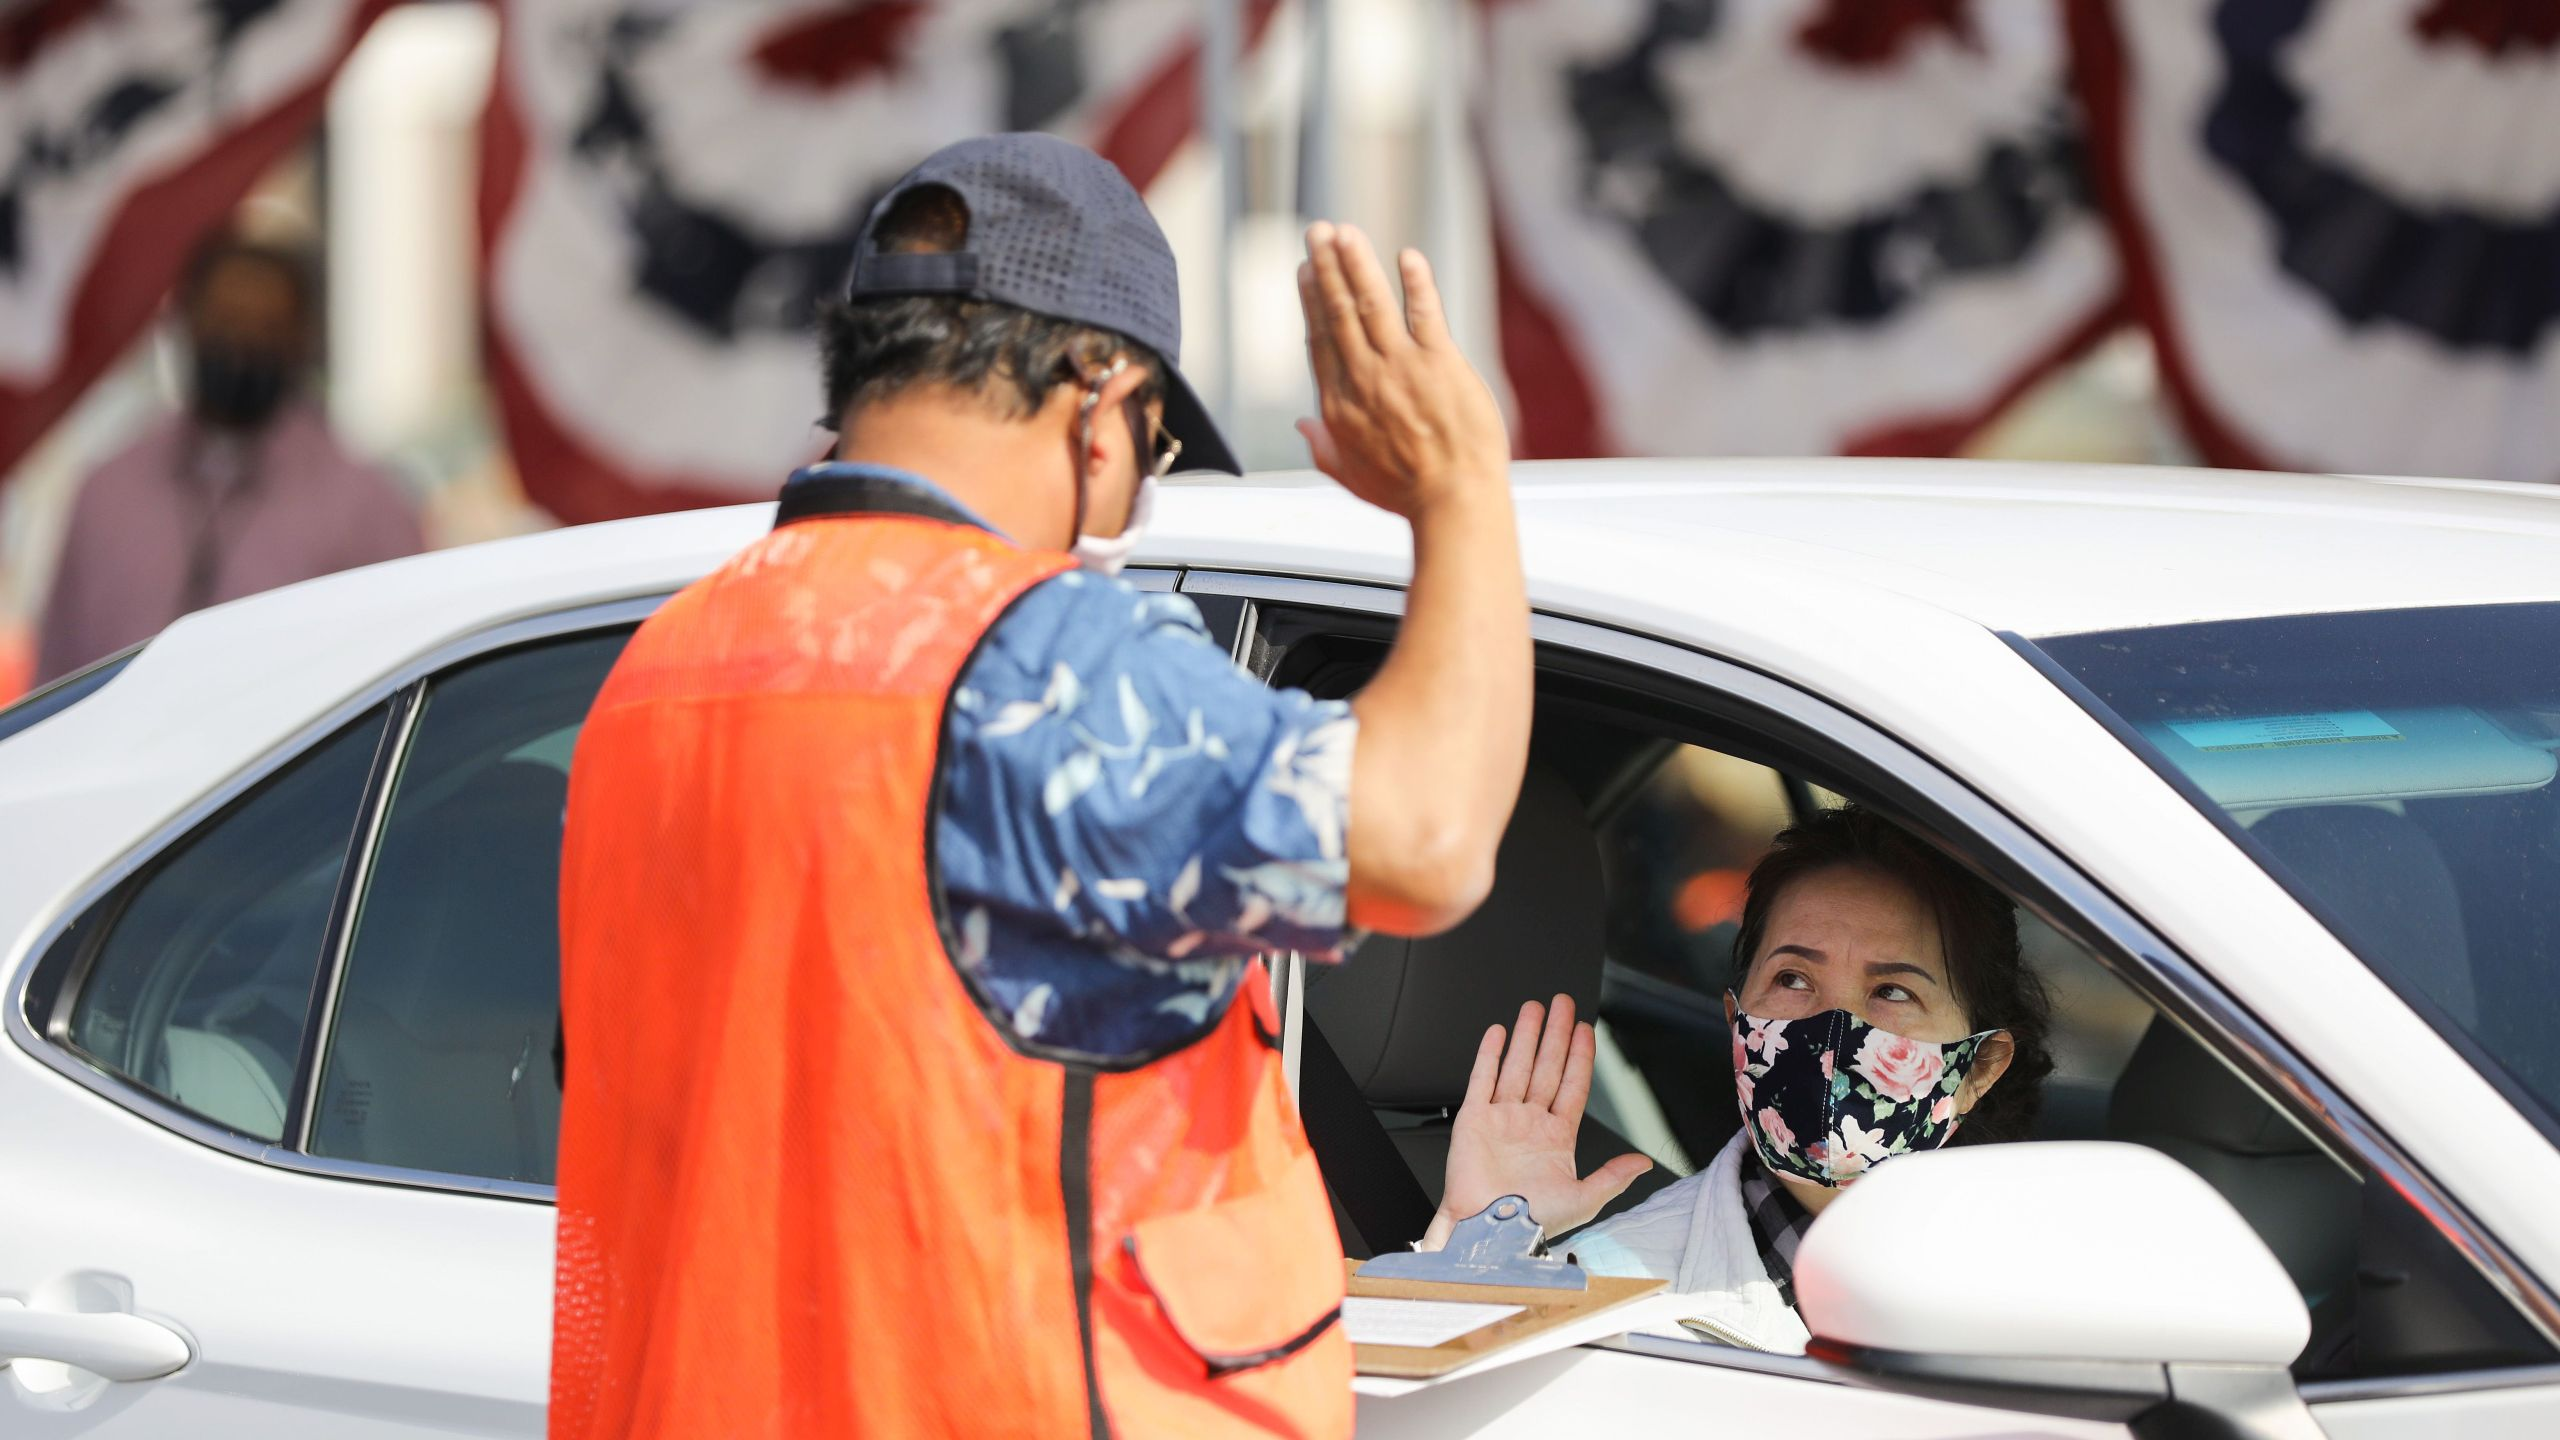 A woman is sworn in as a new U.S. citizen from inside a vehicle at a drive-in naturalization ceremony conducted amid the COVID-19 pandemic on July 29, 2020 in Santa Ana. (Mario Tama/Getty Images)